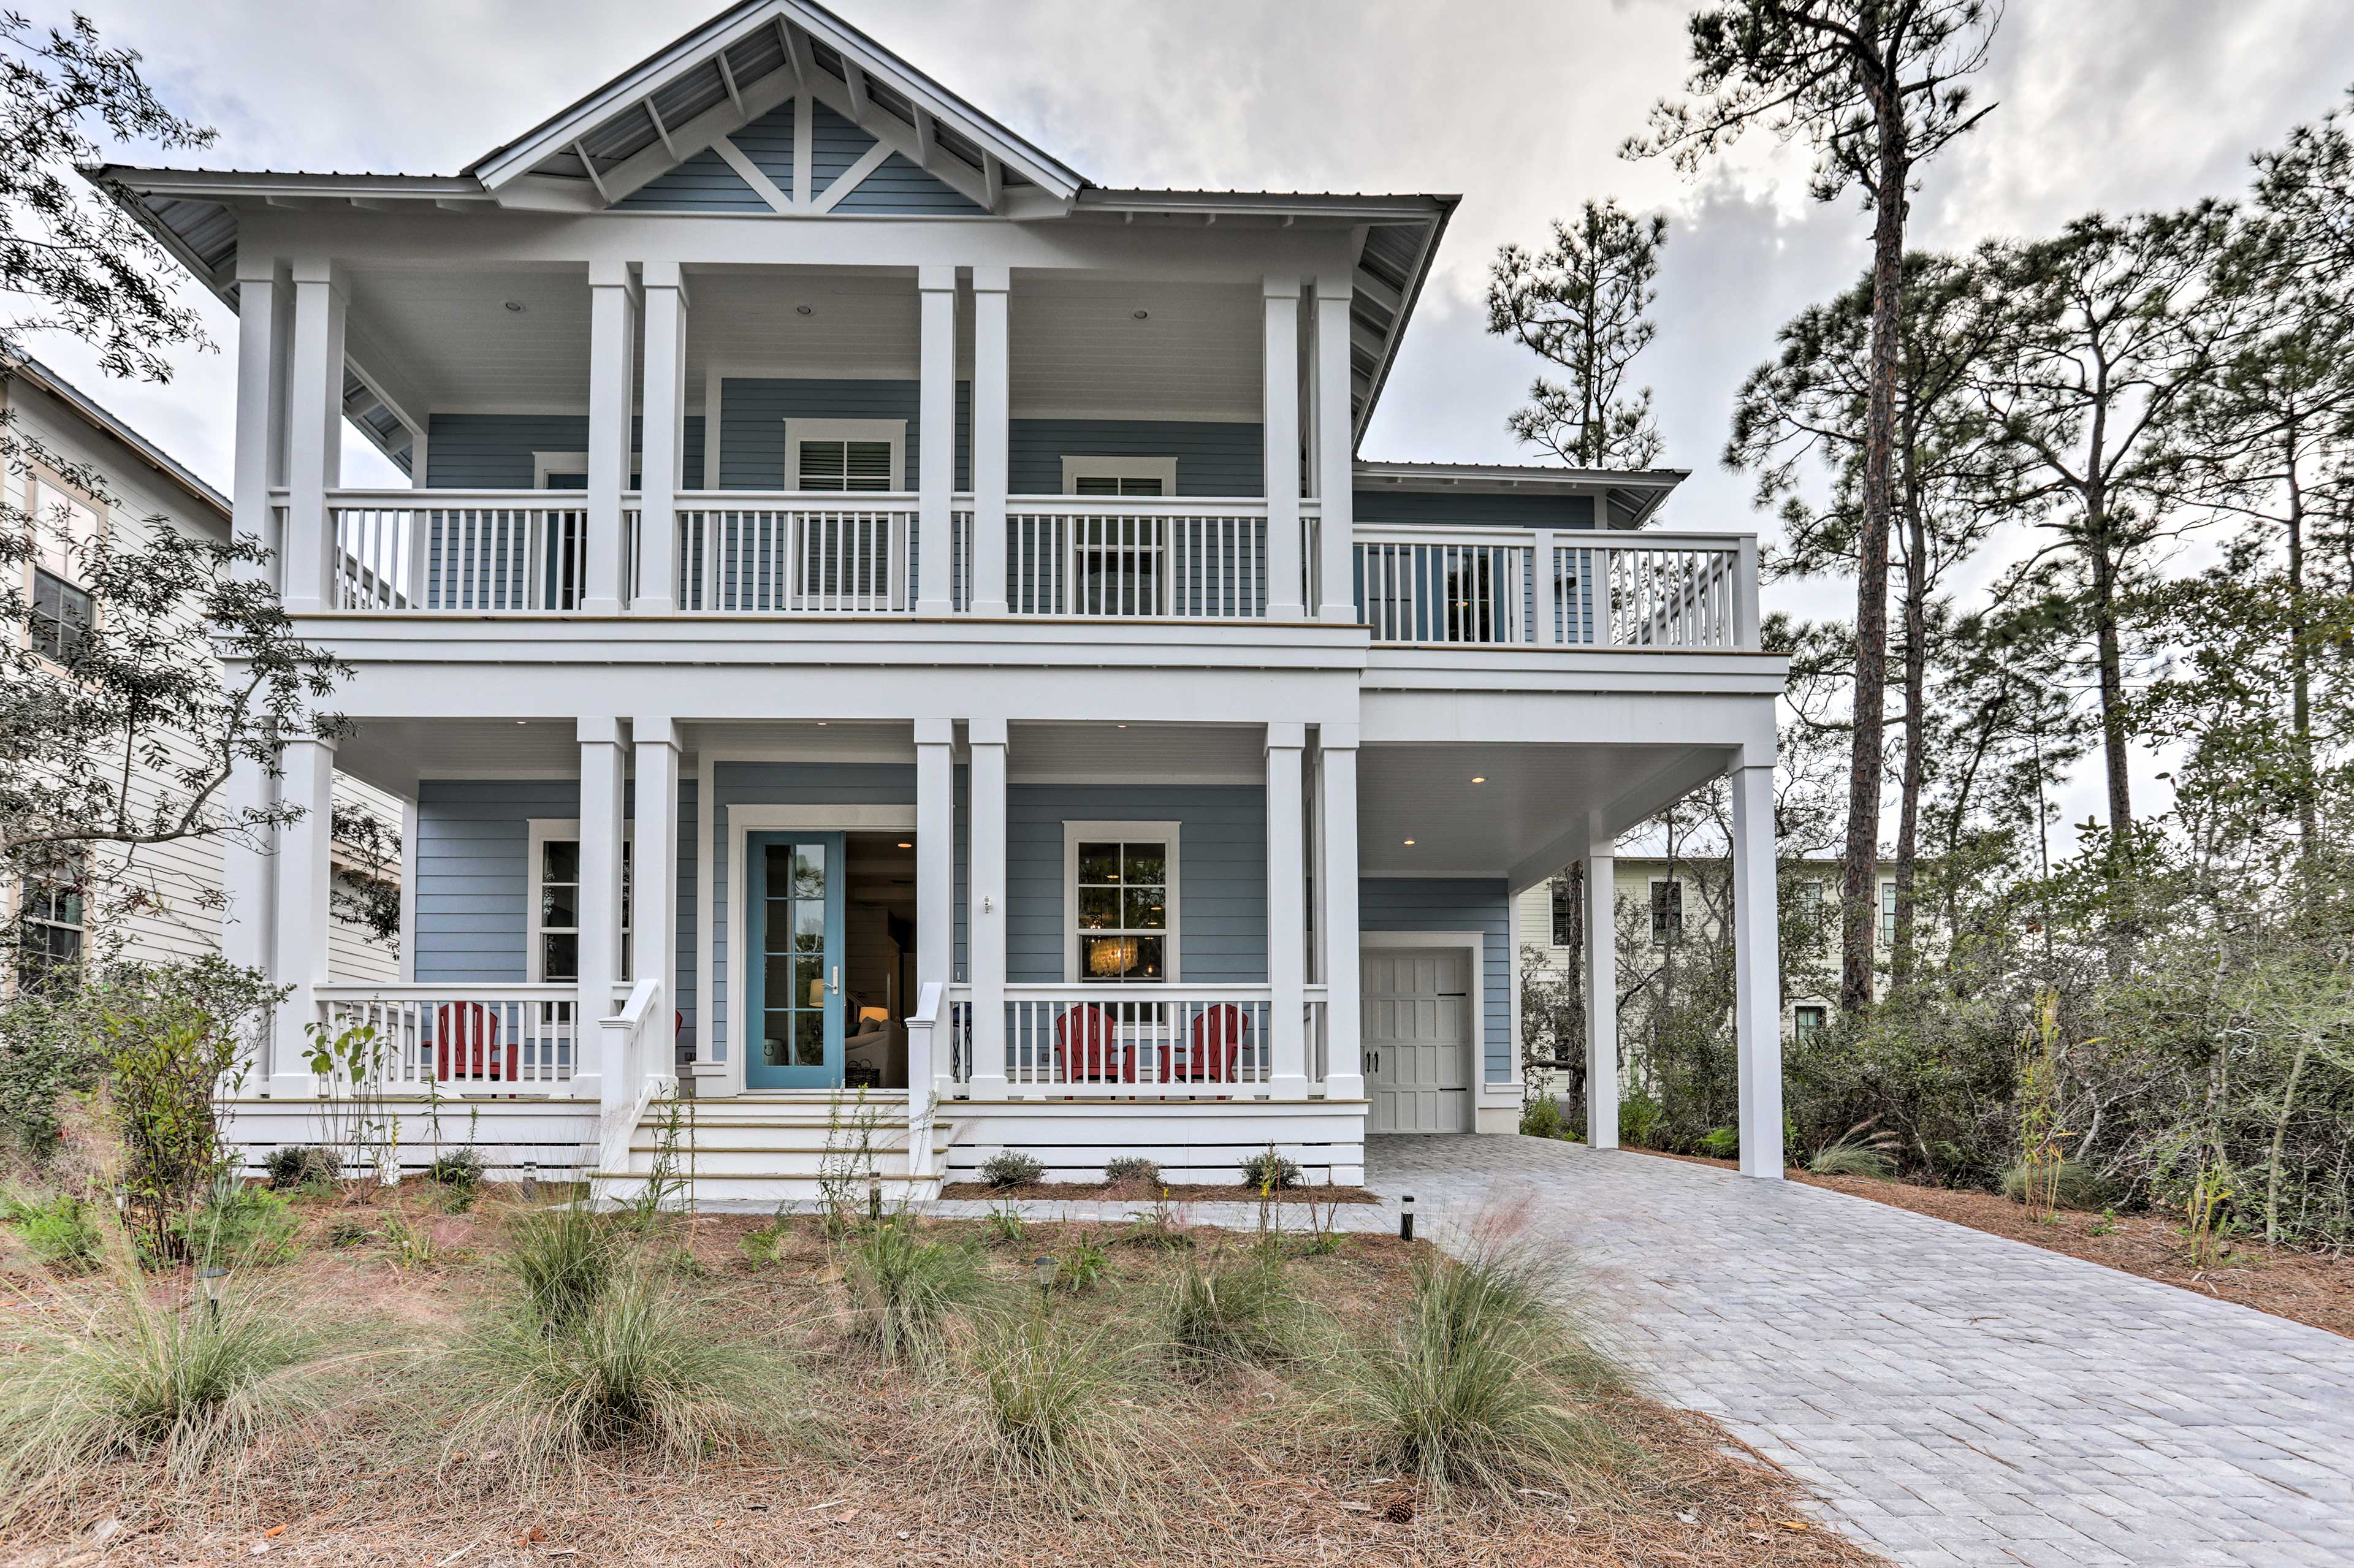 Only a half mile from the beach, this exceptional home hosts up to 8 guests